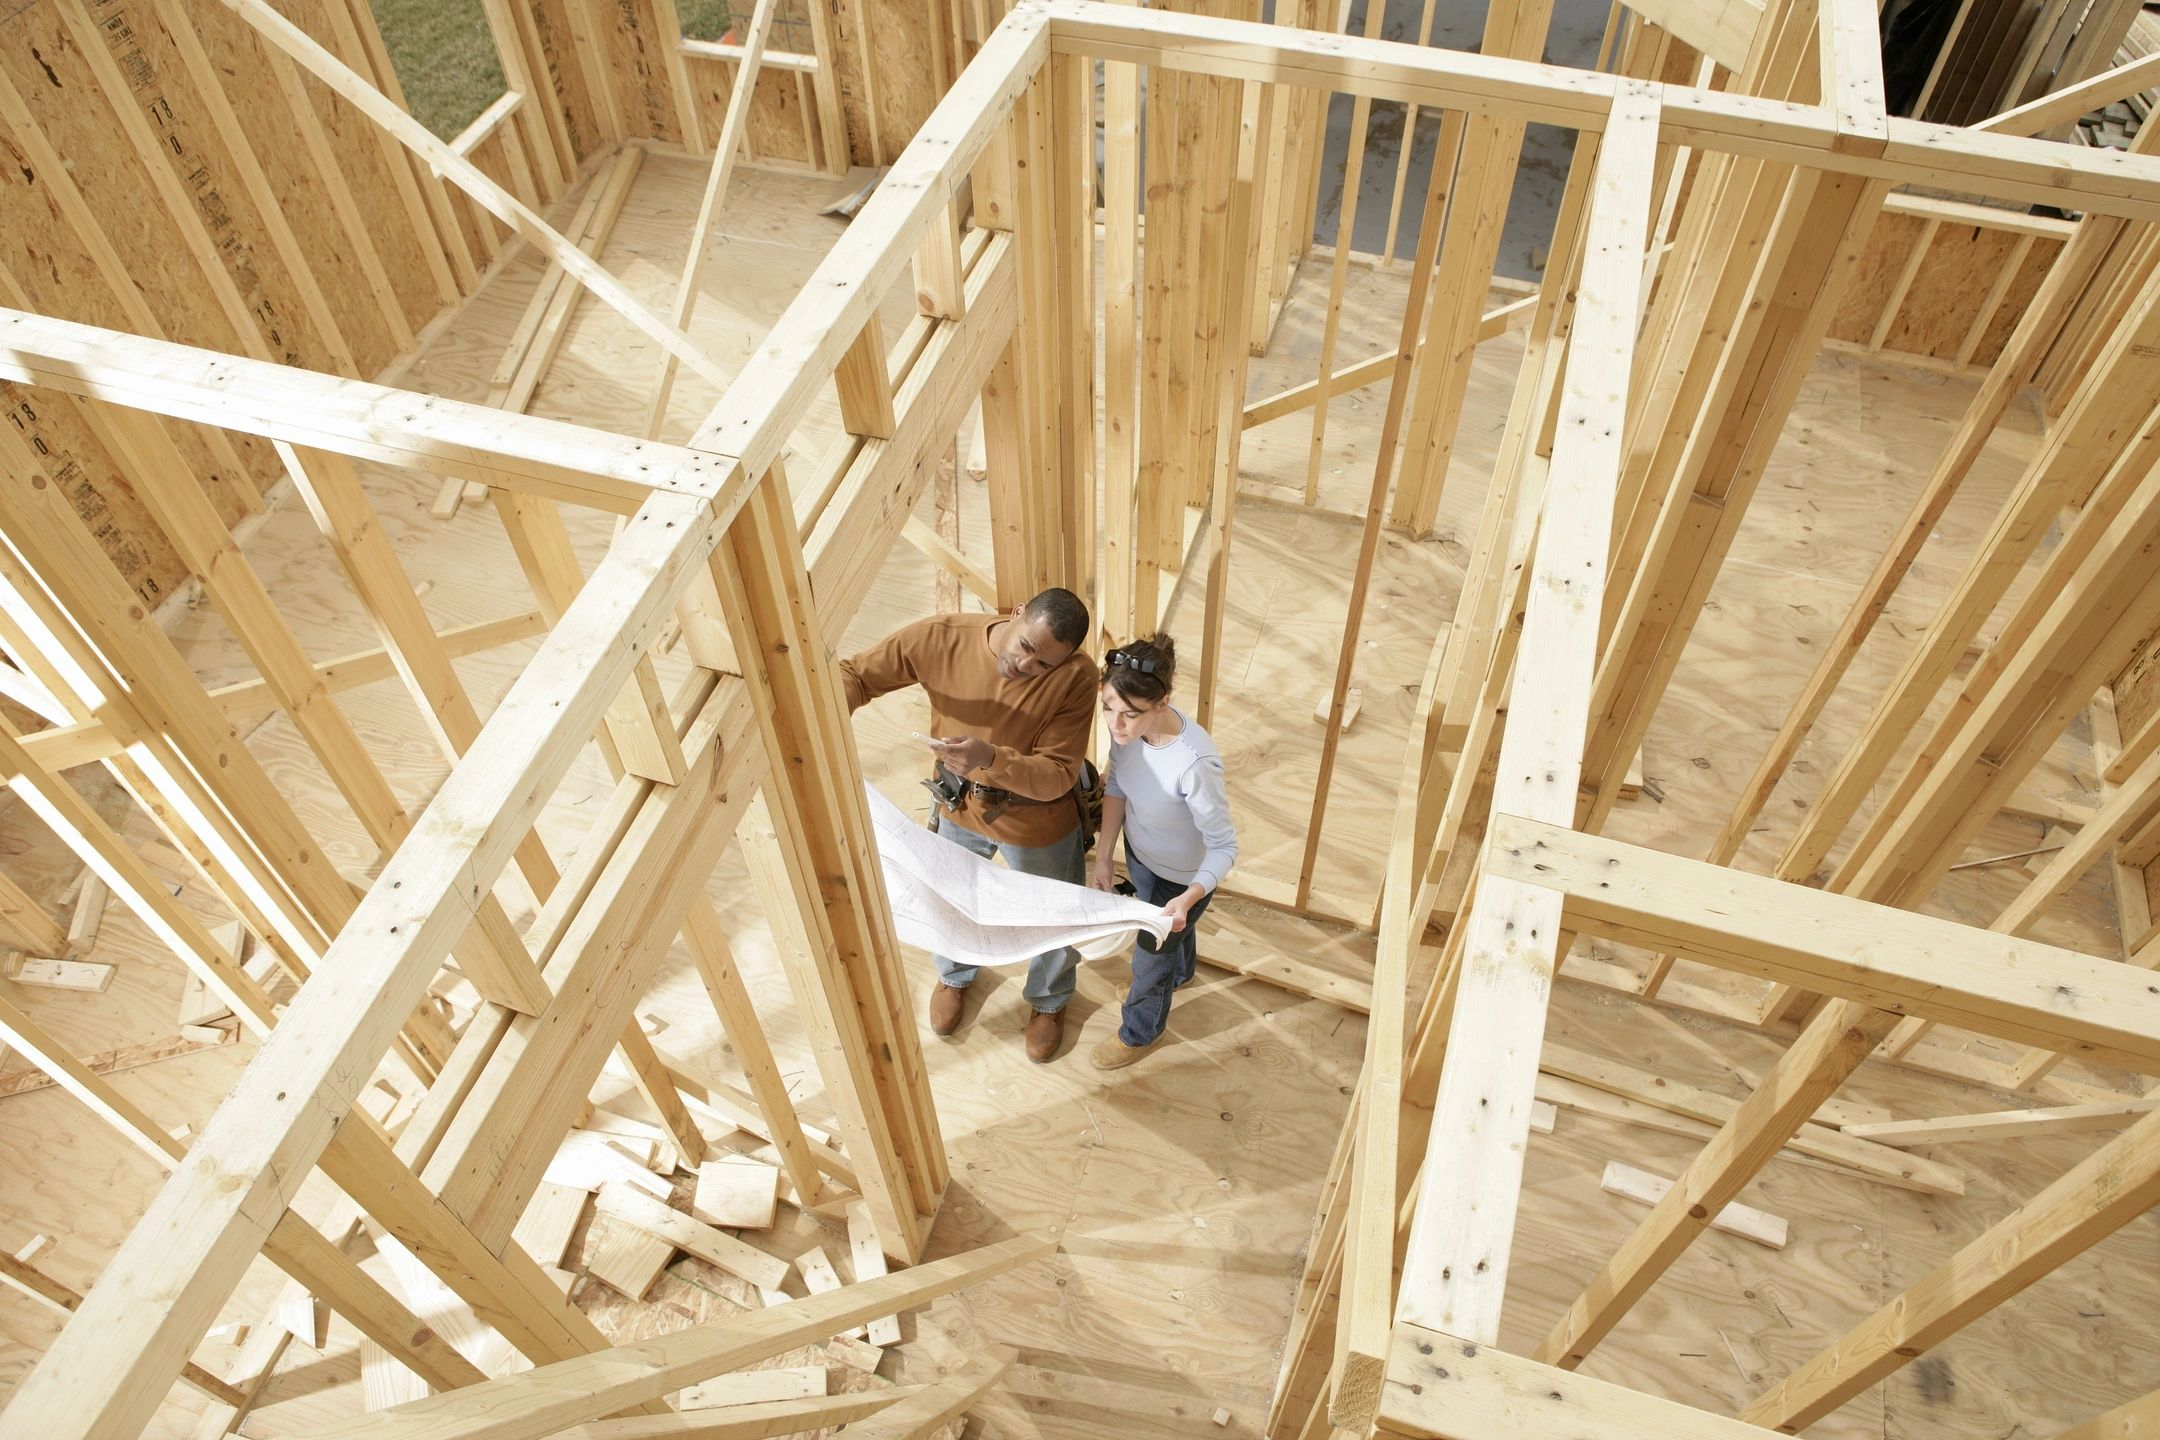 Build a new home or Remodel your existing home